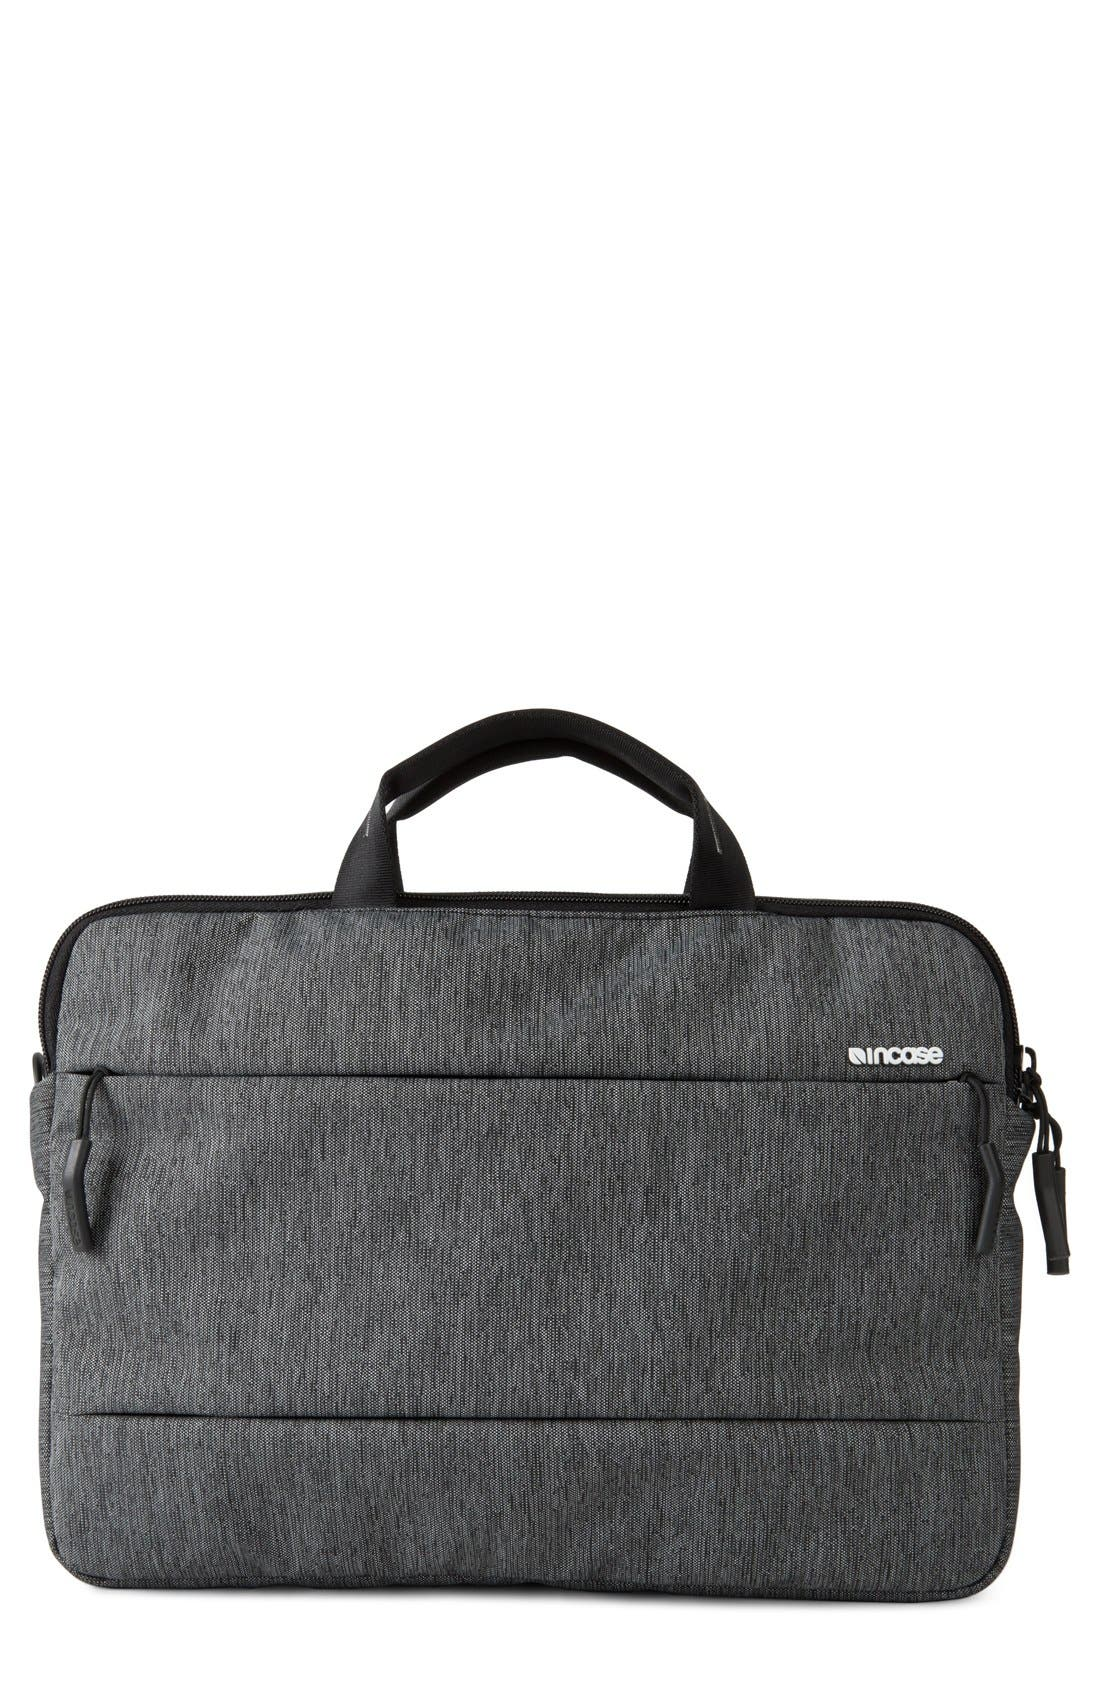 Alternate Image 1 Selected - Incase Designs City Collection 13 Inch Briefcase